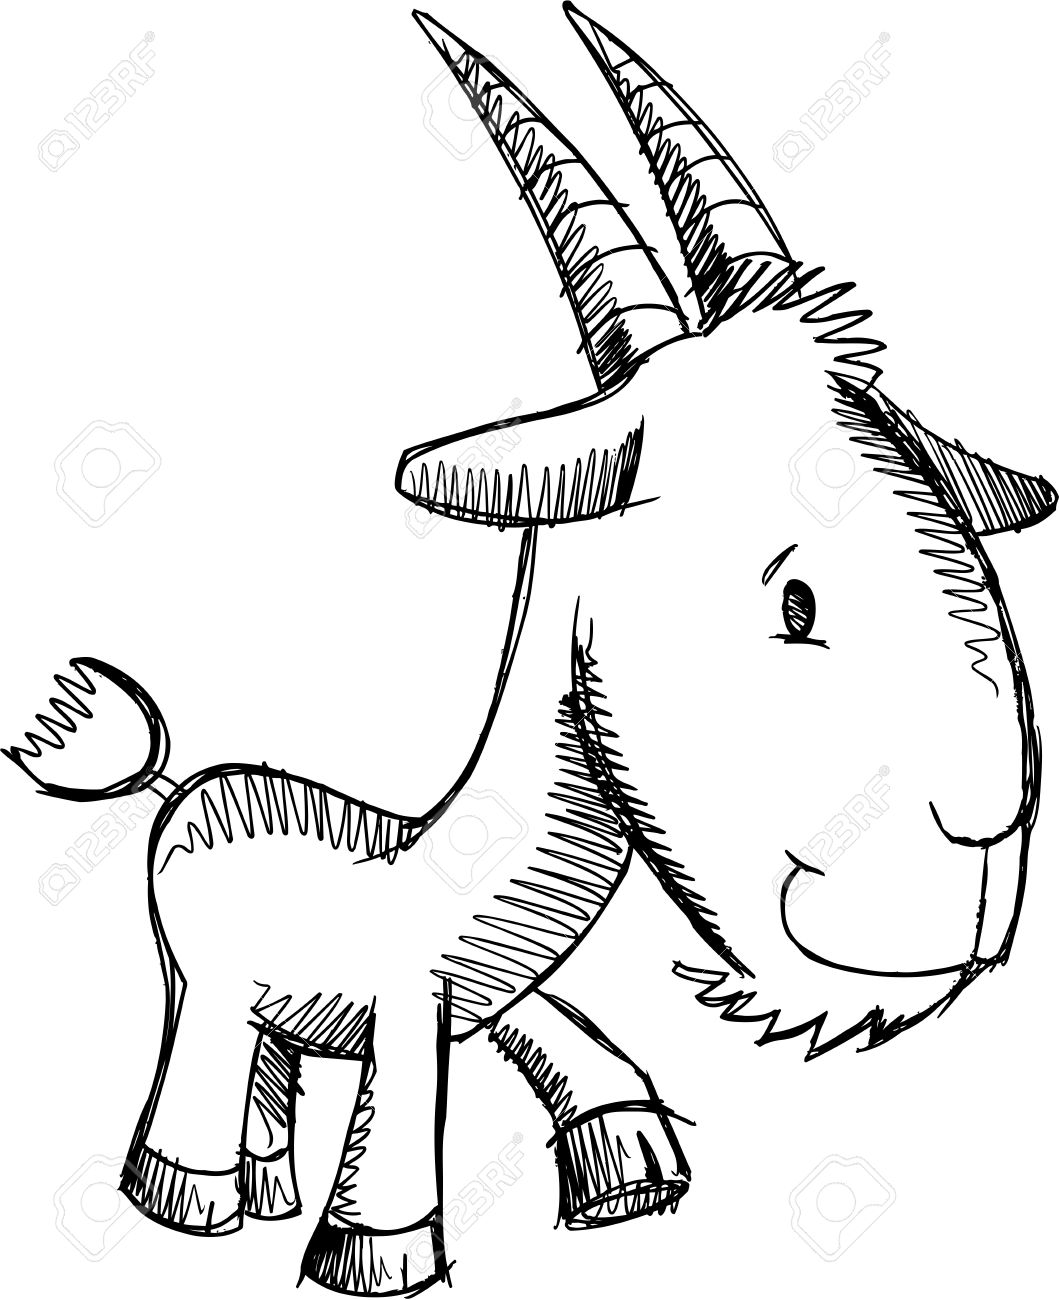 1059x1300 Farm Goat Sketch Doodle Royalty Free Cliparts, Vectors, And Stock